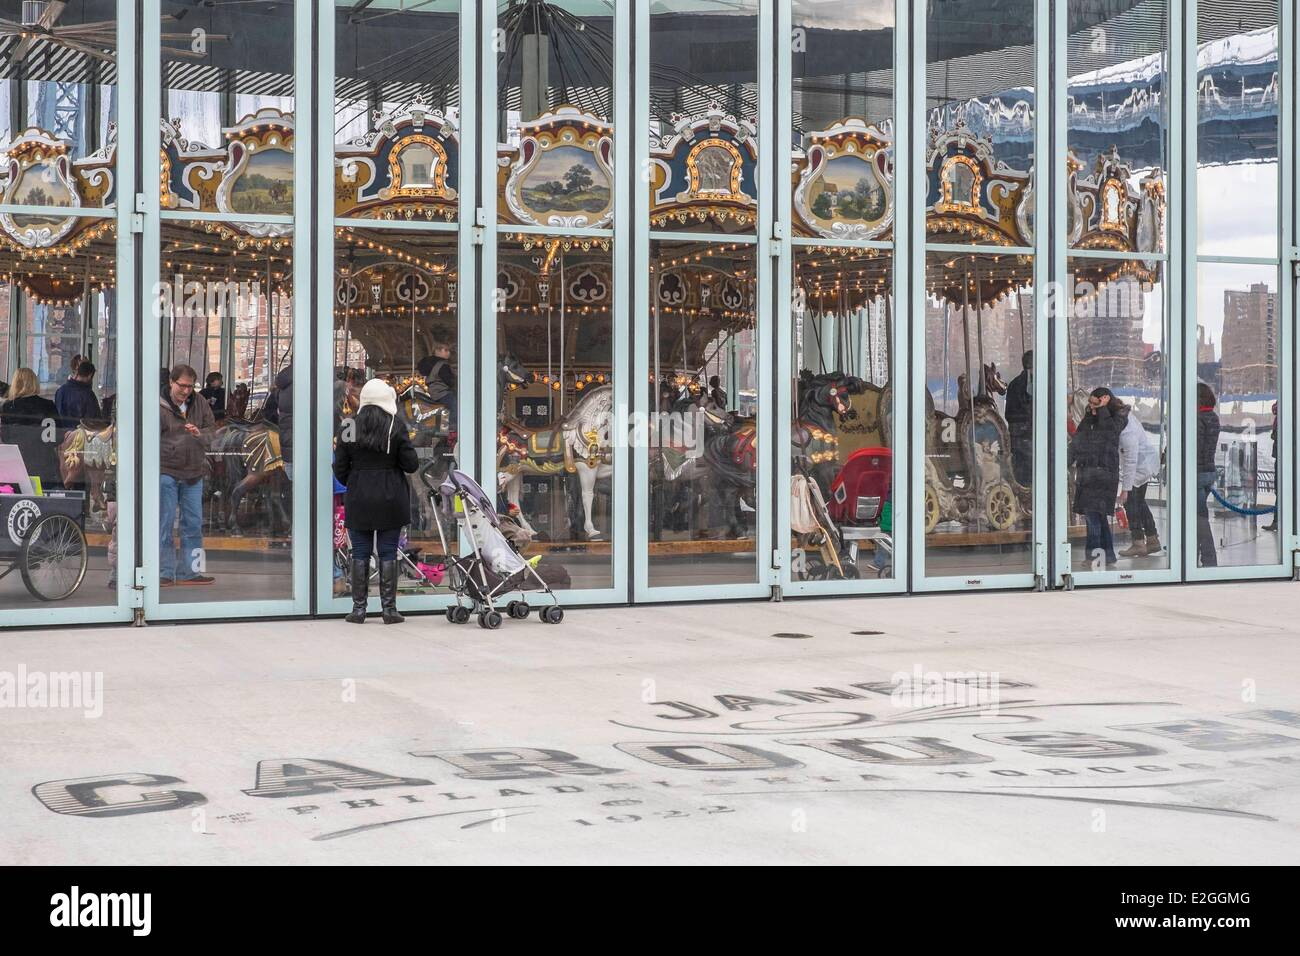 United States New York Brooklyn Dumbo district Jane's Carousel - Stock Image